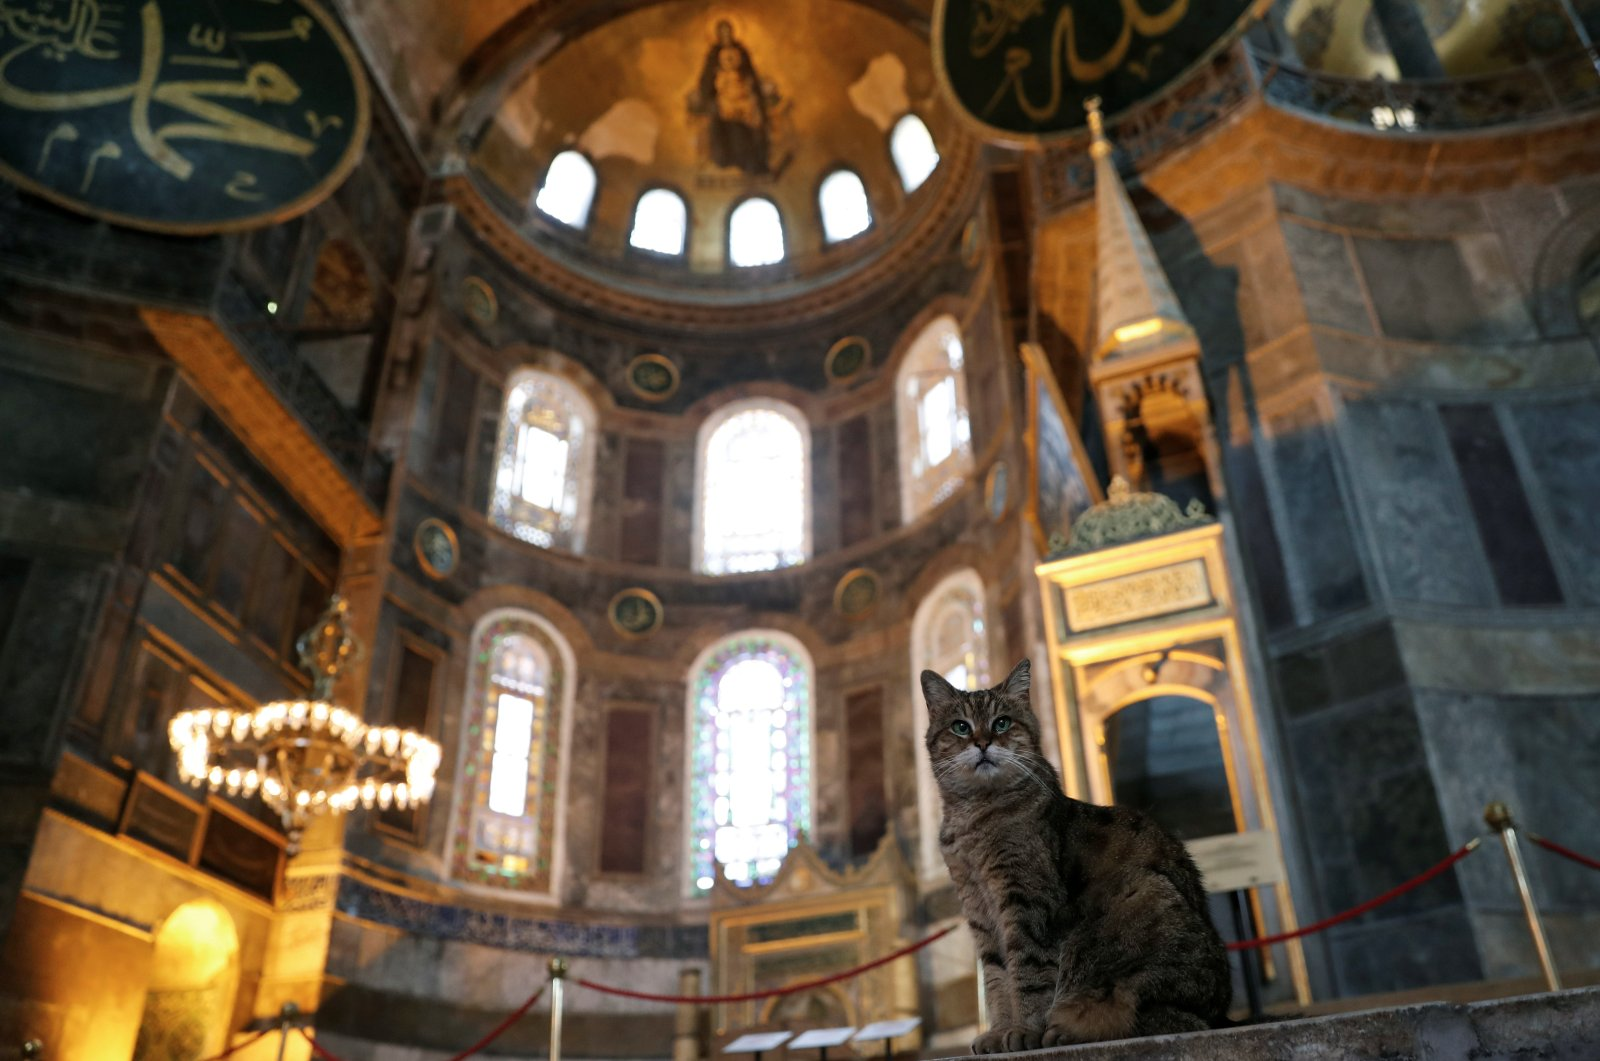 Gli the cat is pictured at Hagia Sophia in Istanbul, Turkey, July 2, 2020. (Reuters Photo)